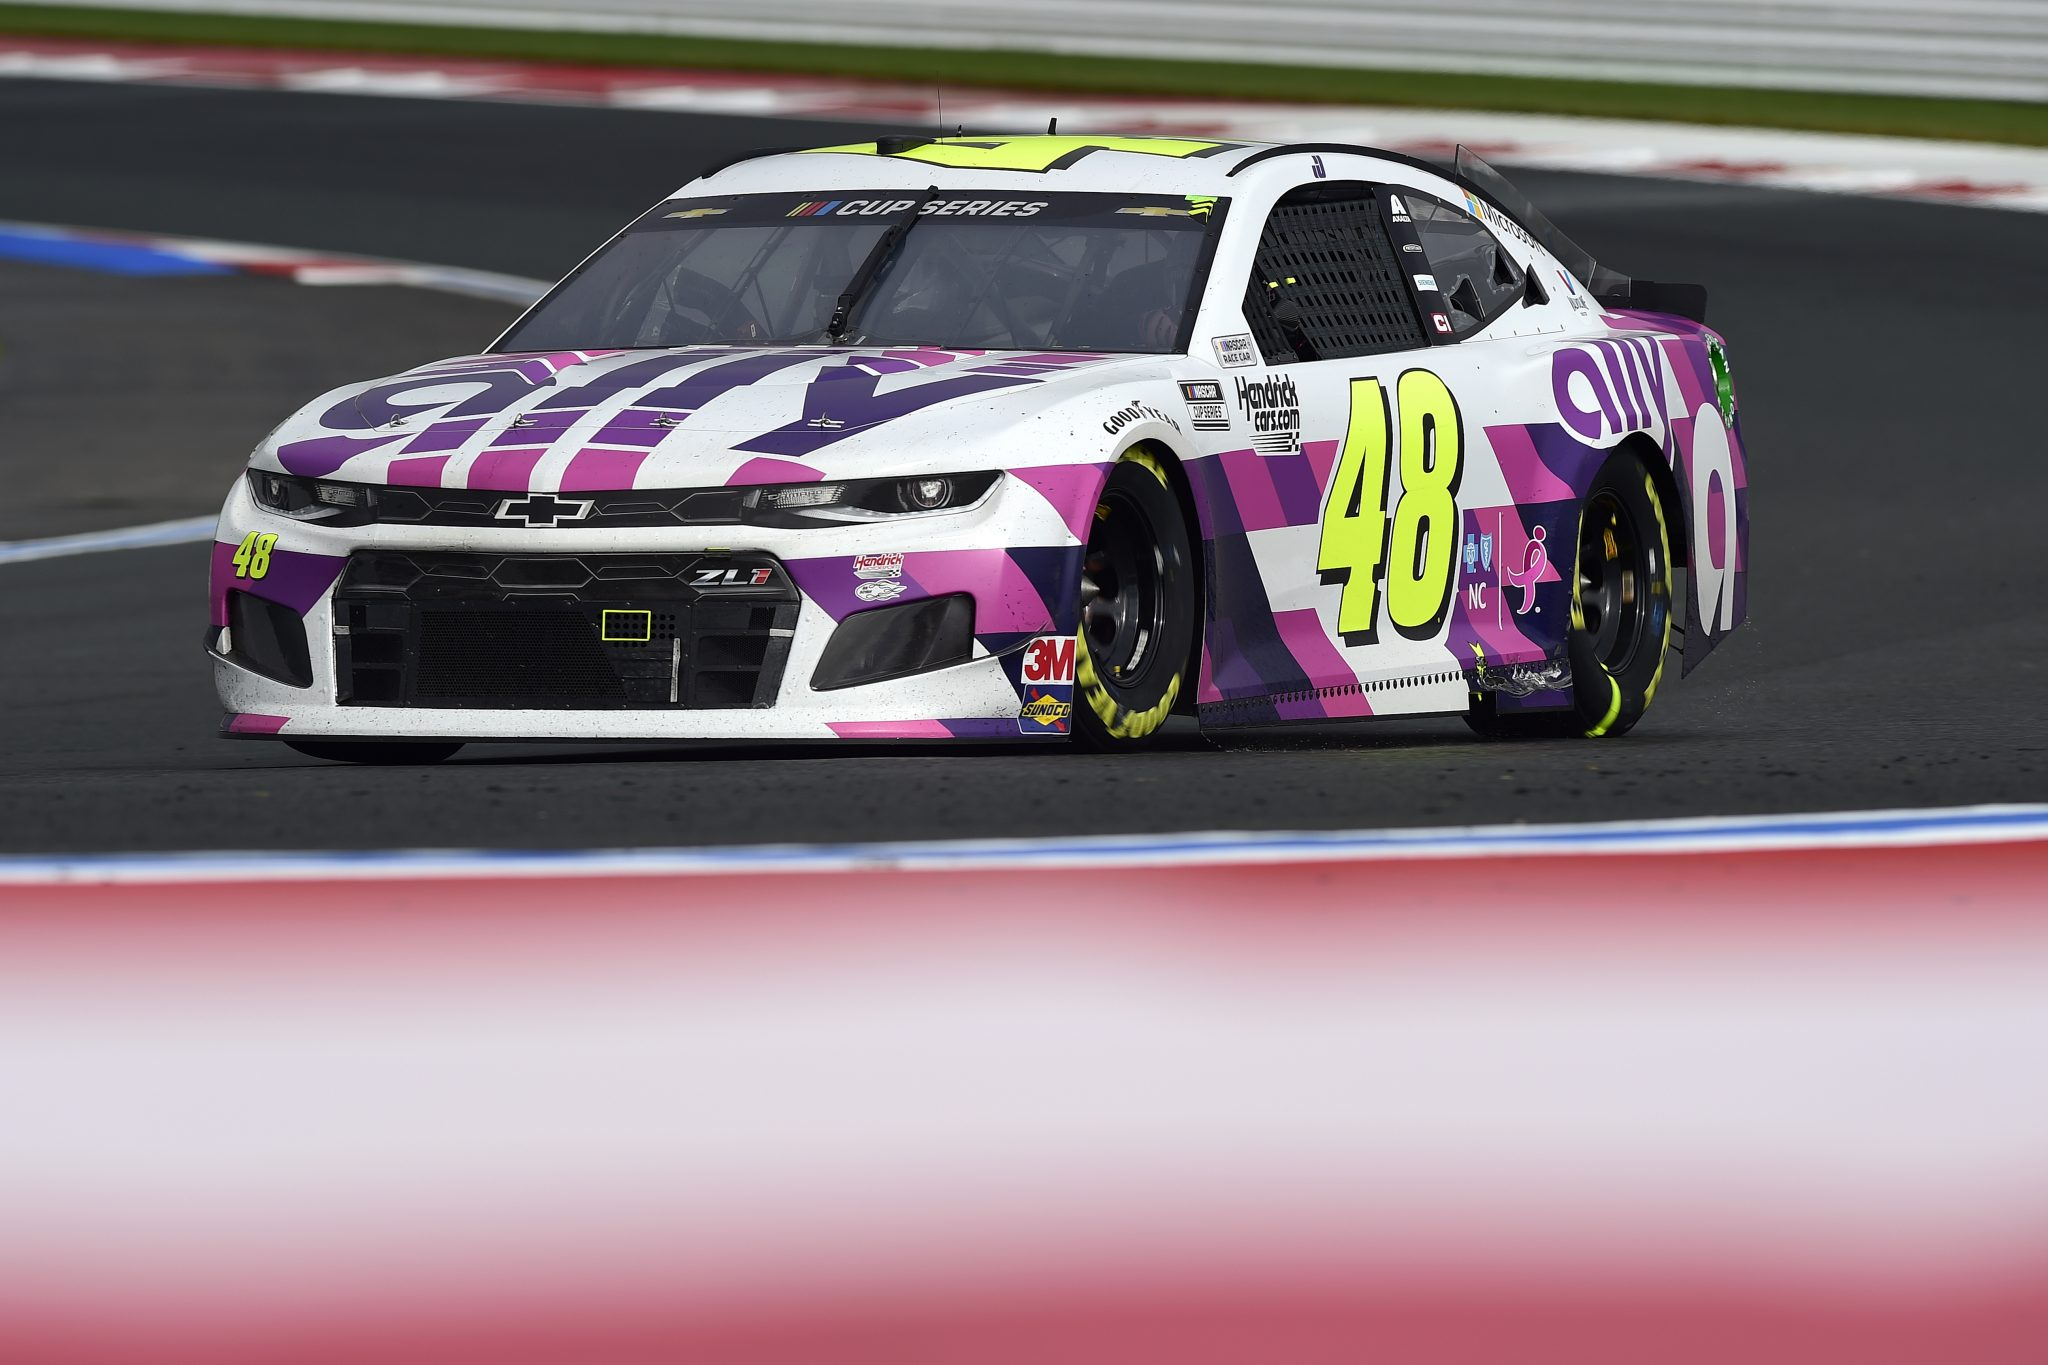 CONCORD, NORTH CAROLINA - OCTOBER 11: Jimmie Johnson, driver of the #48 Ally Chevrolet, drives during the NASCAR Cup Series Bank of America ROVAL 400 at Charlotte Motor Speedway on October 11, 2020 in Concord, North Carolina. (Photo by Jared C. Tilton/Getty Images) | Getty Images